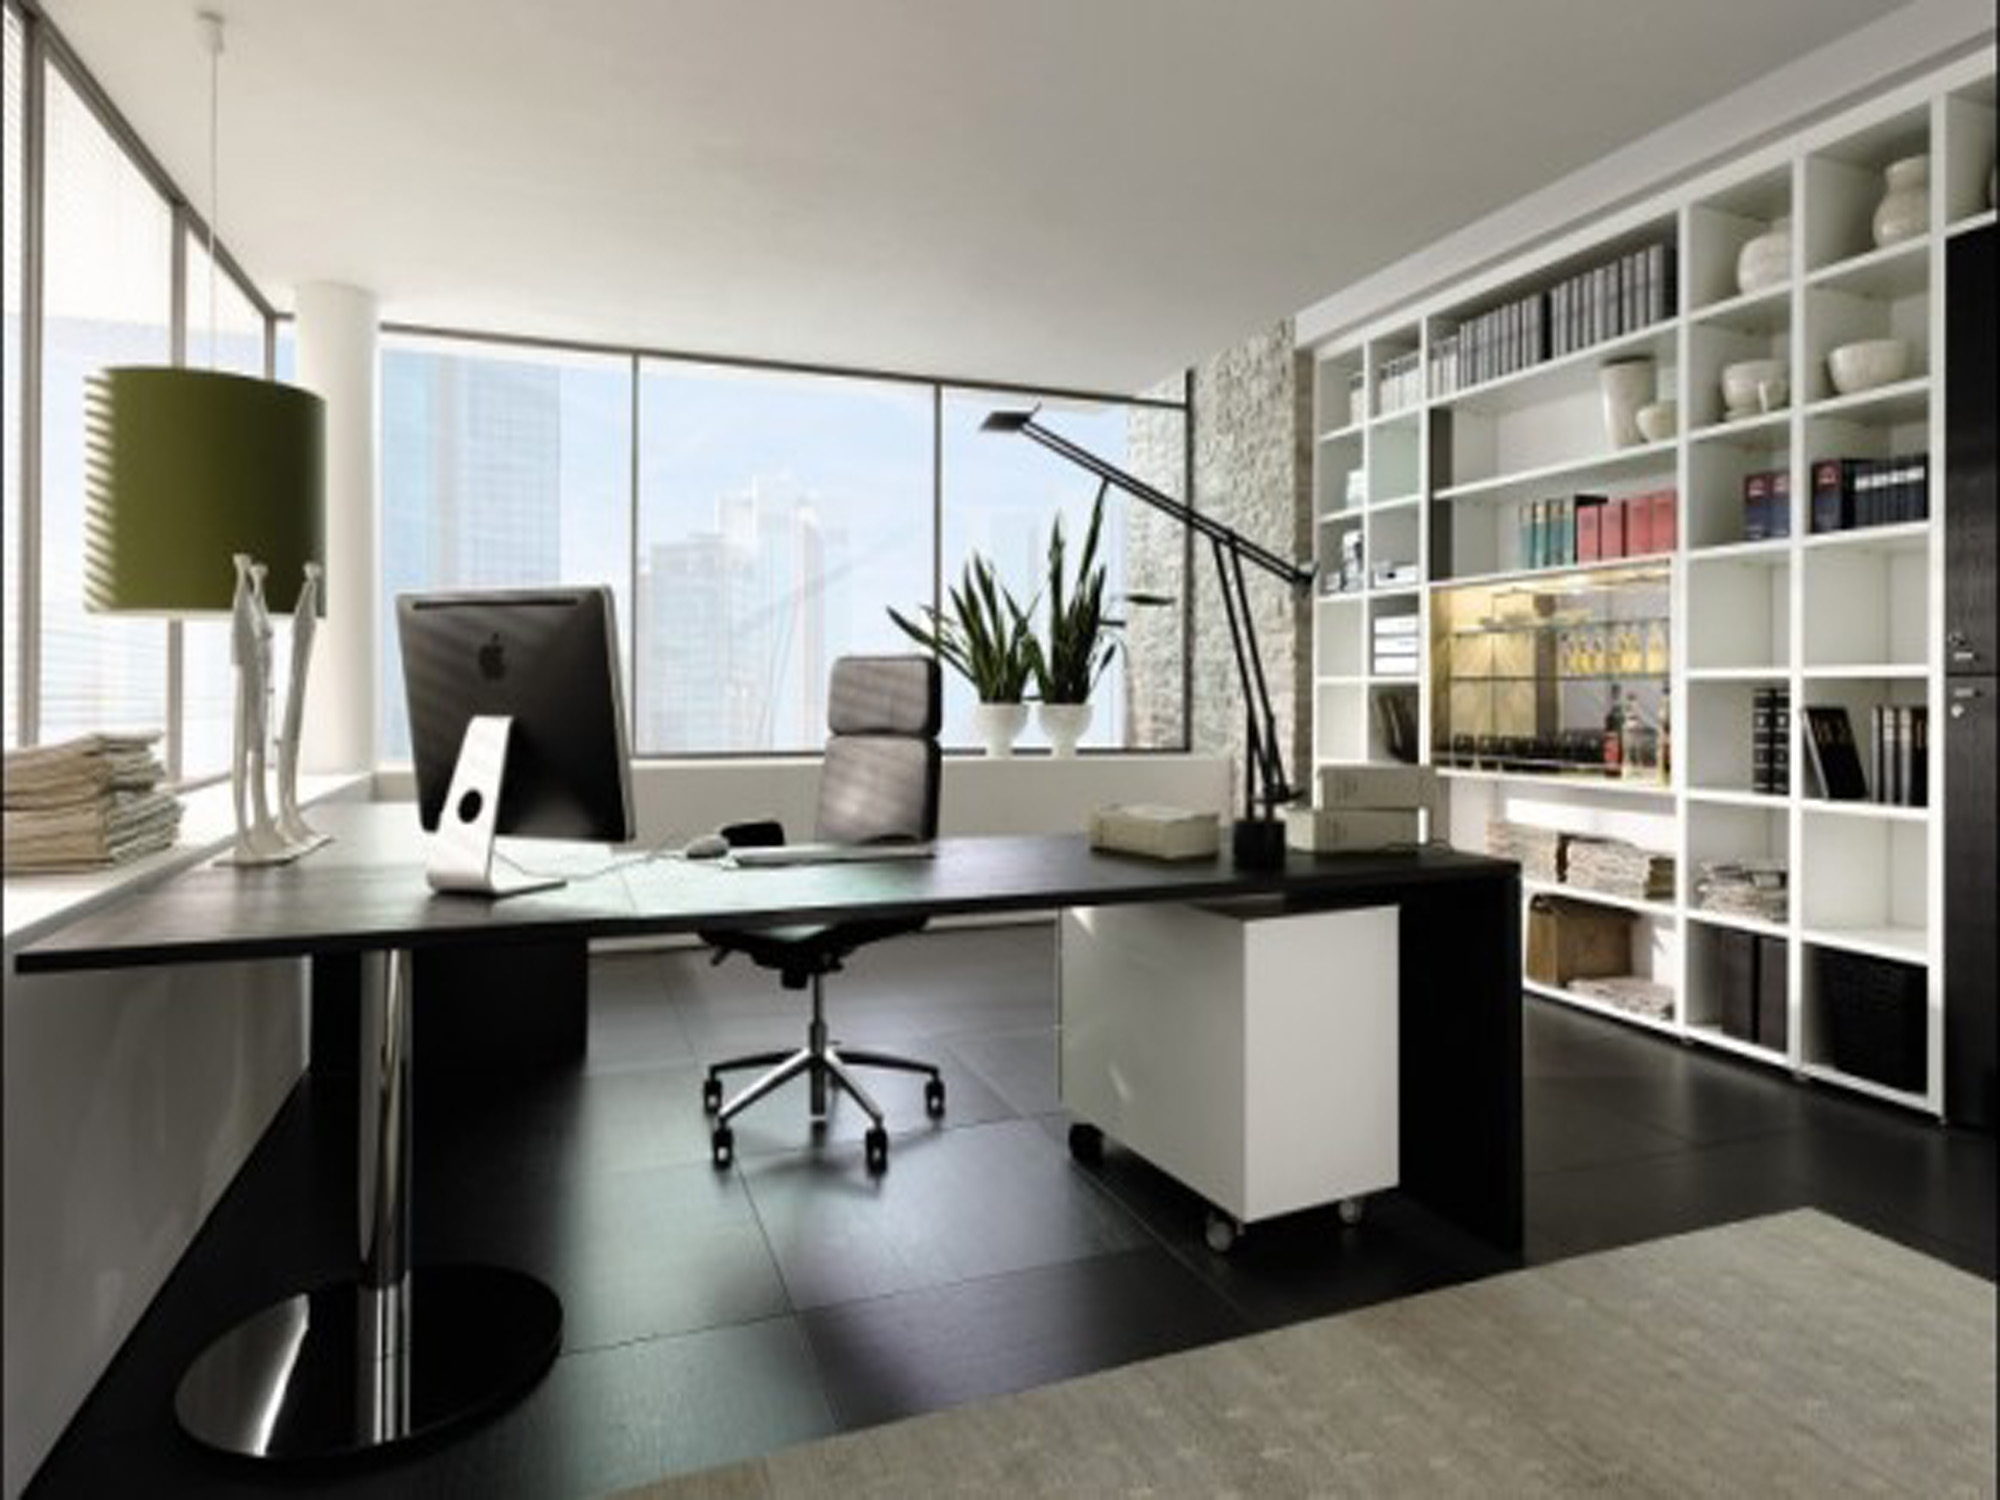 Photos of office Interior You Might Always Be Postponing The Task Of Organizing Your Office Thinking You Do Not Have Enough Time To Do The Job However If You Really Took Time To Evacusafe Us Office Organization Strategies And Tips Bloggers Path